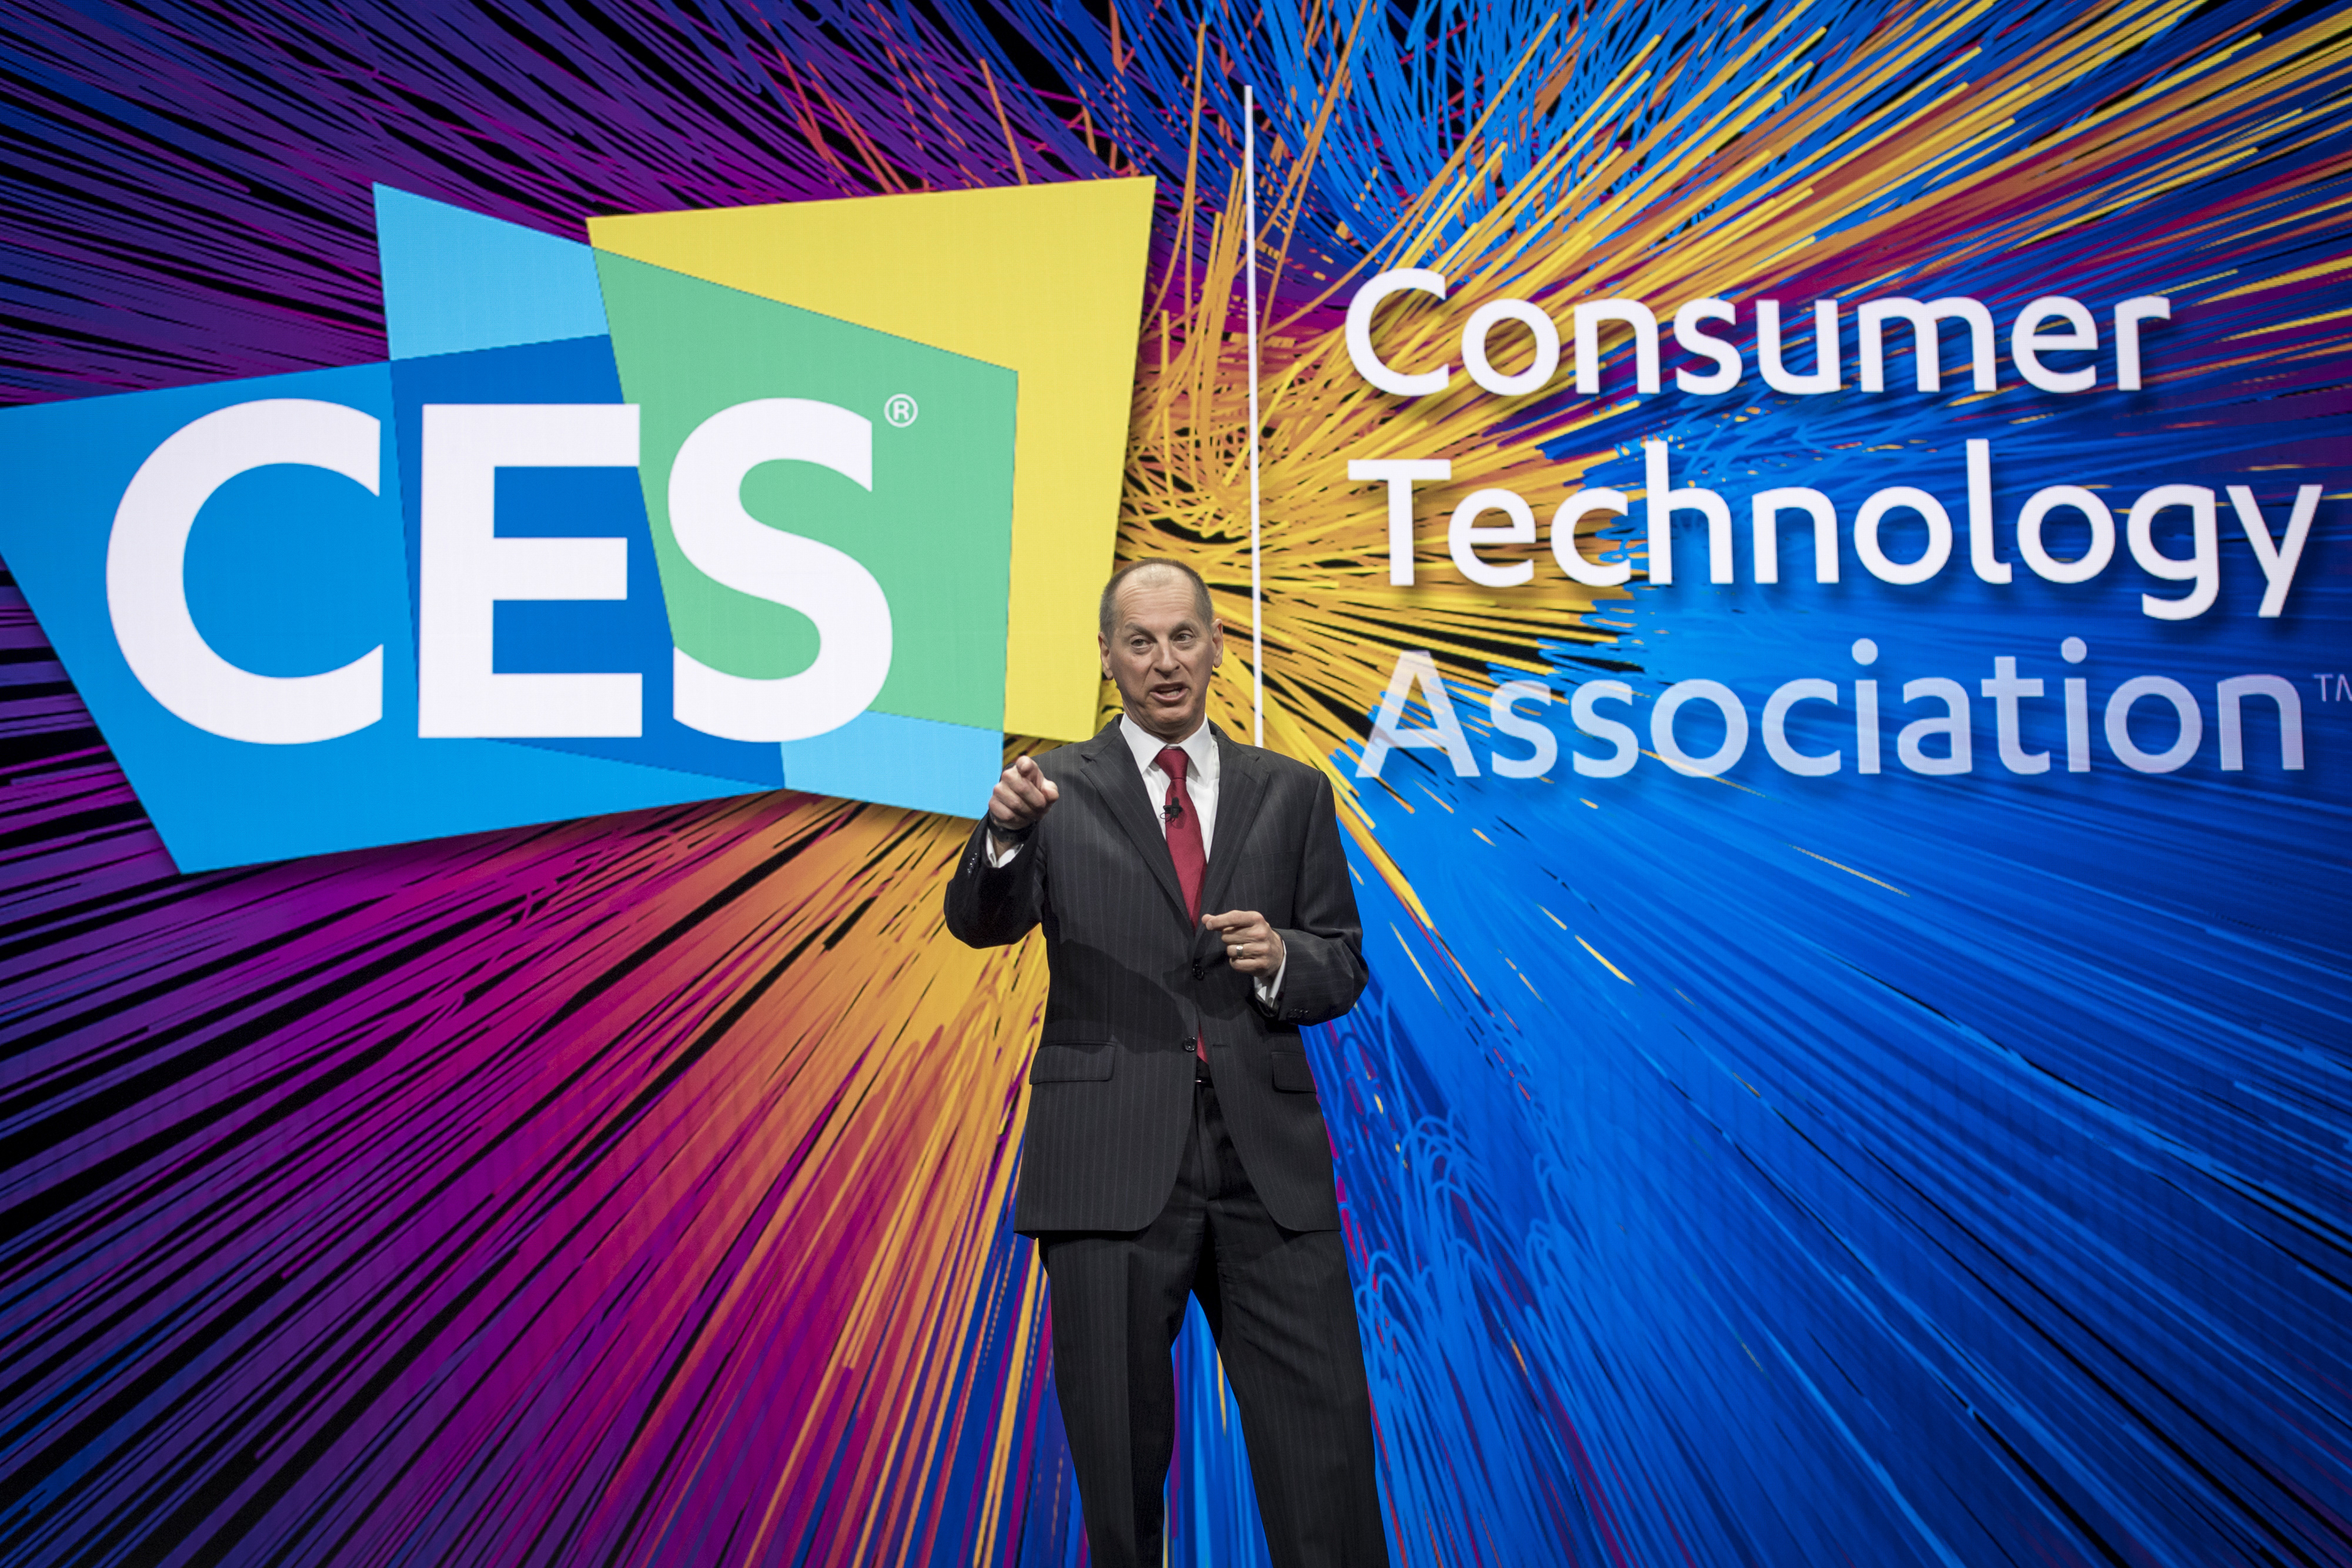 CES 2020 will allow sex toys to be judged in Health & Wellness category